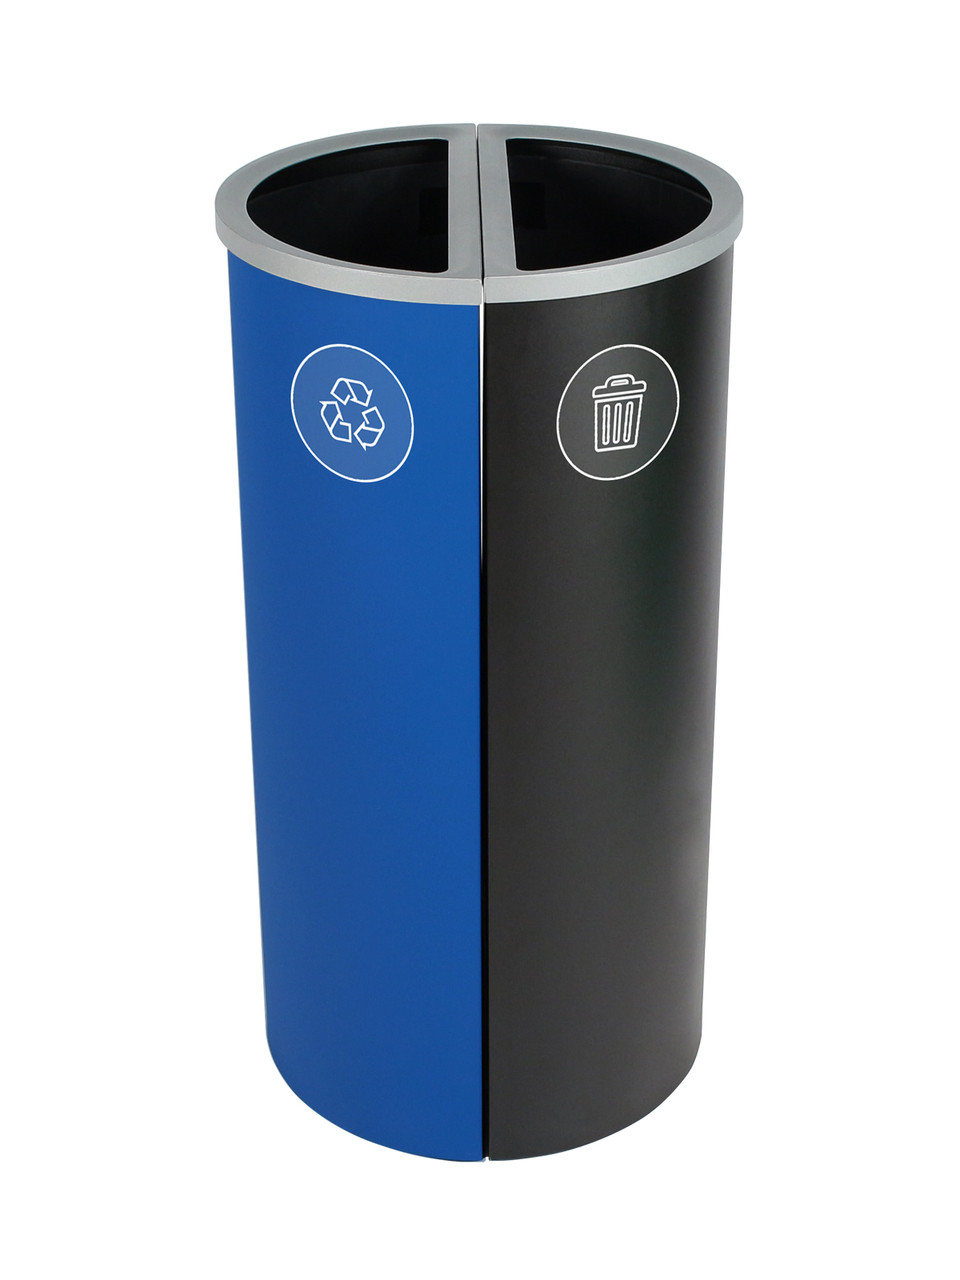 16 Gallon Spectrum Round Trash Can & Recycle Bin Blue/Black 8107084-44